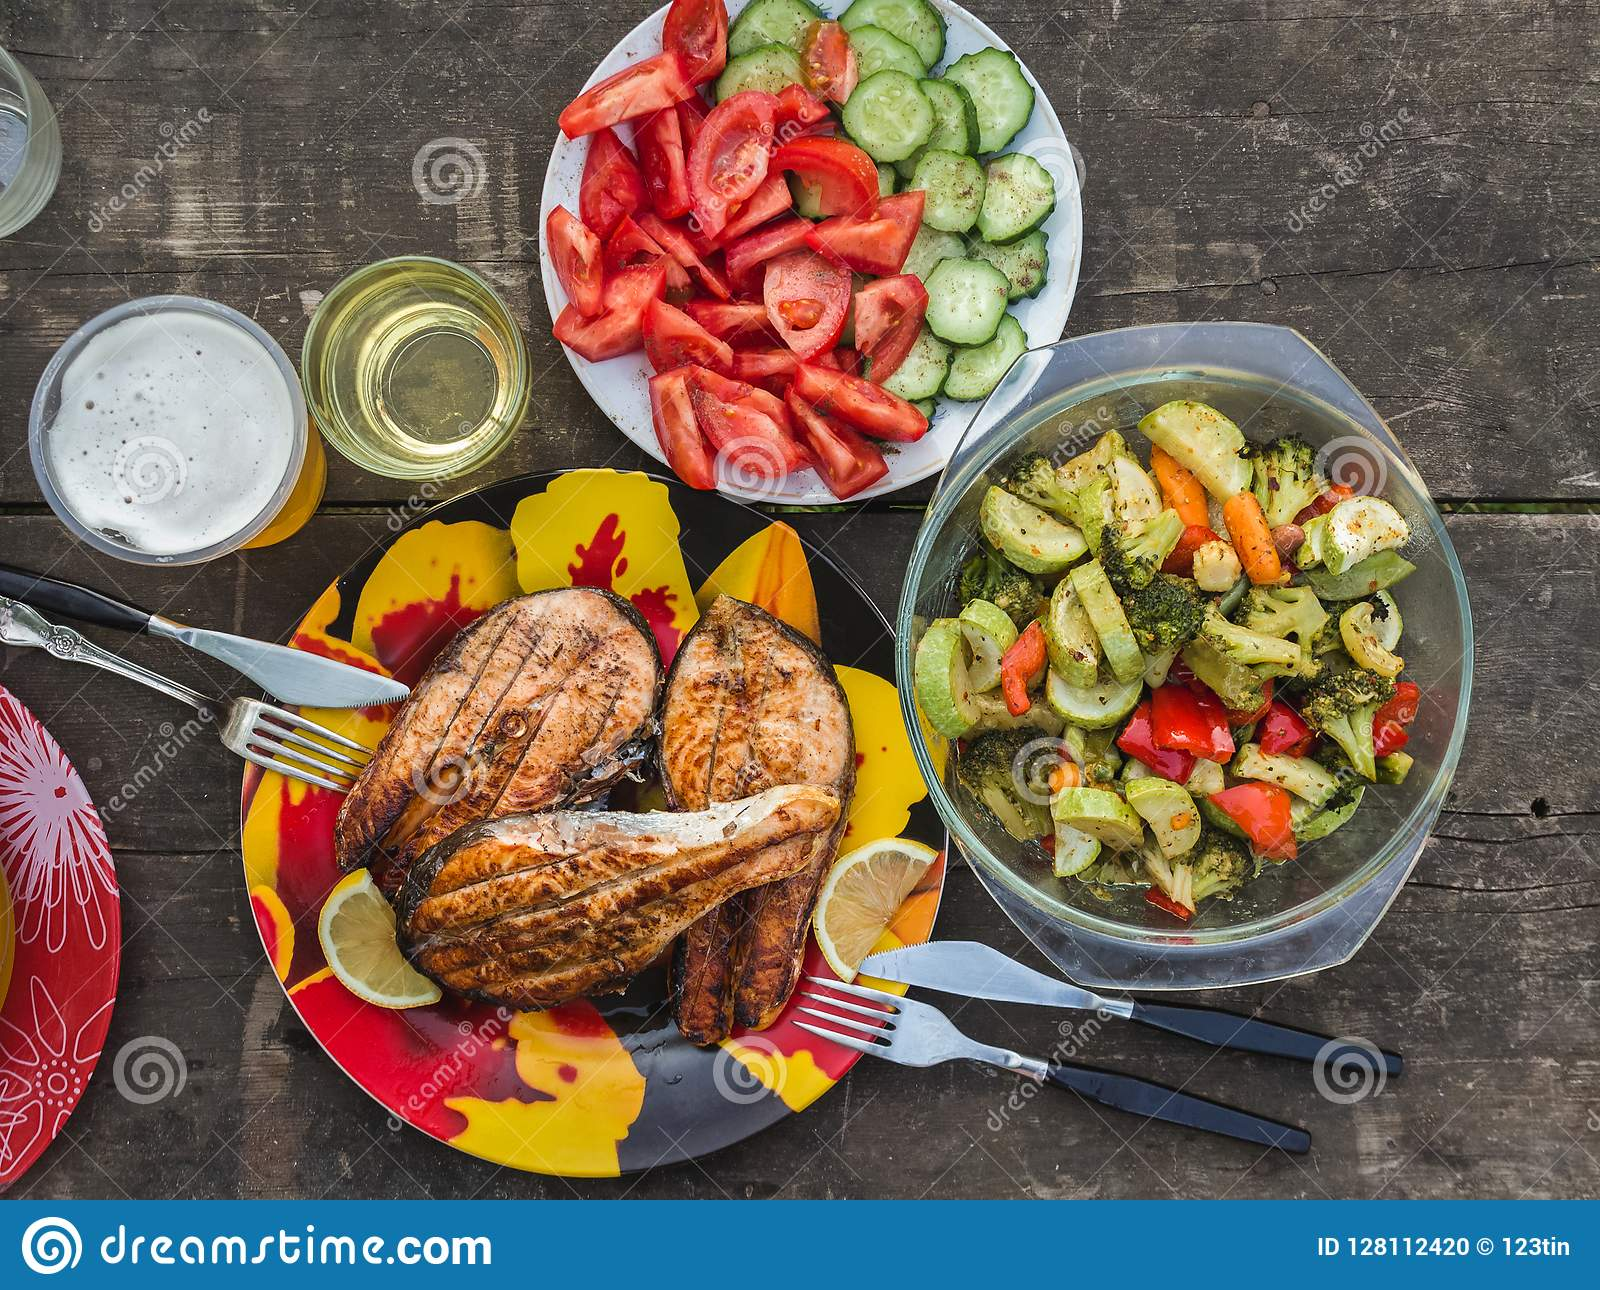 Three Grilled Salmon Steaks With A Side Dish Of Baked Vegetables Stock Photo Image Of Dinner Closeup 128112420